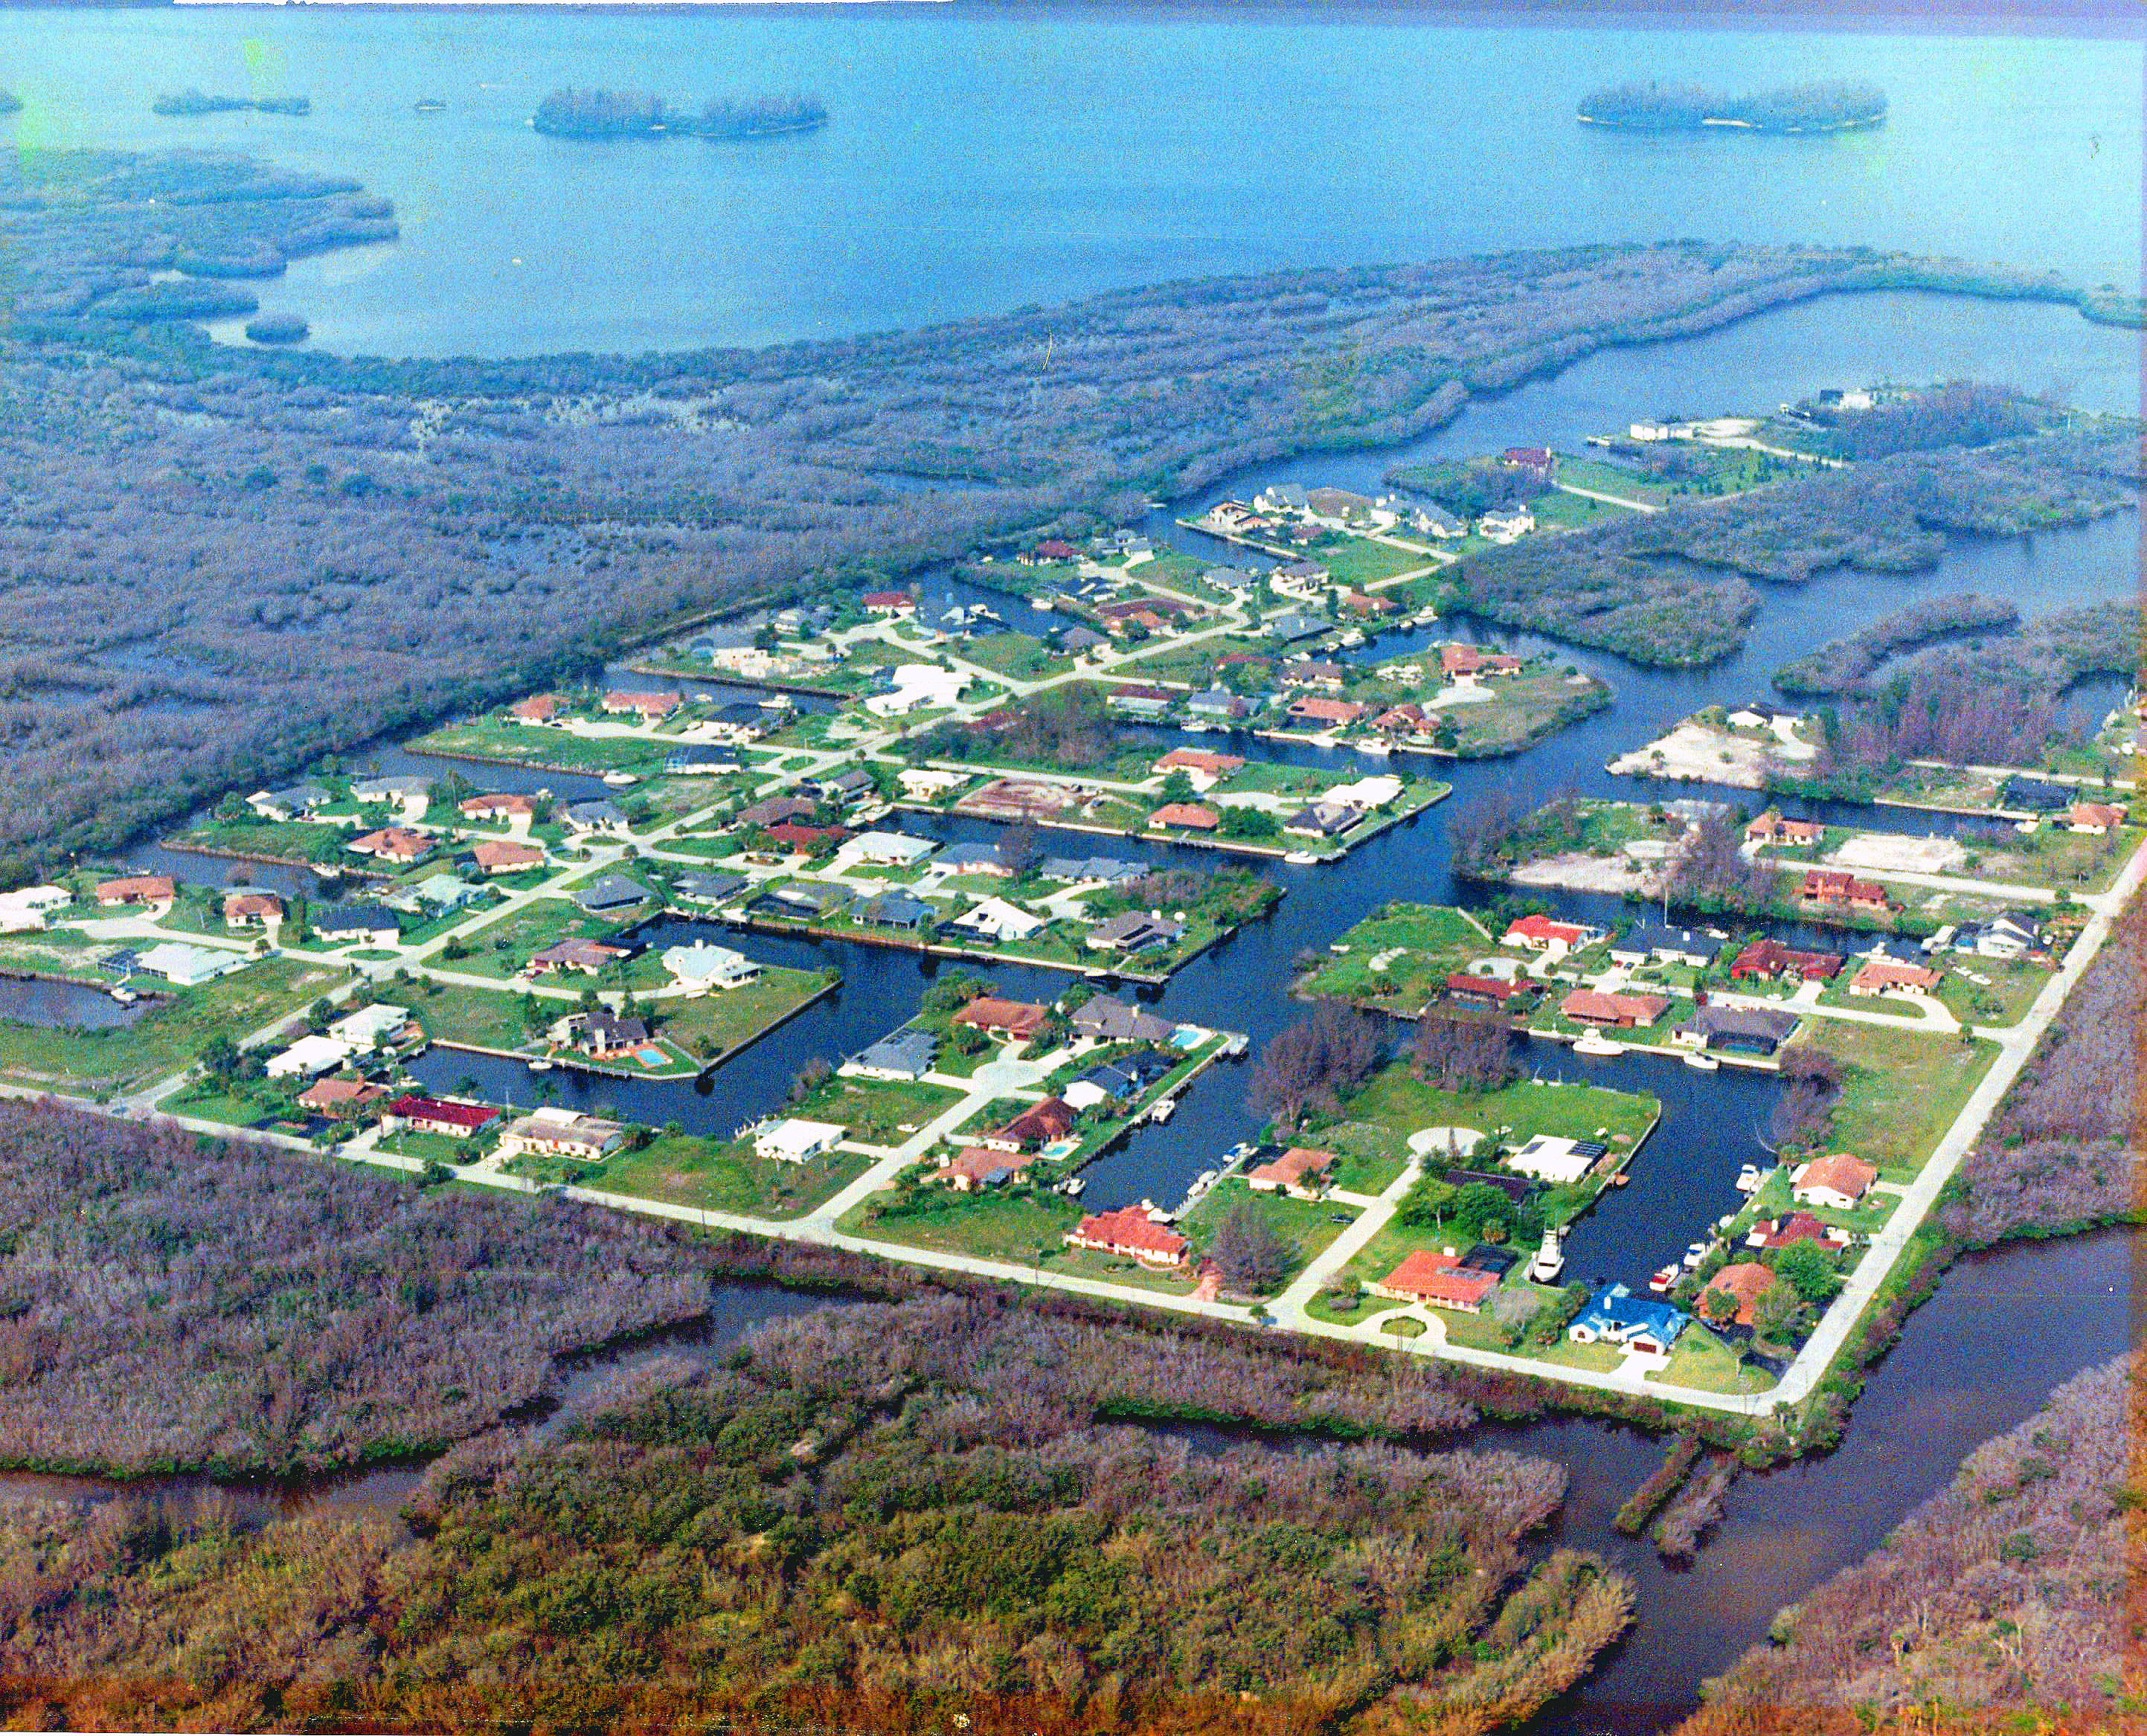 Queens cove from air 3.jpg